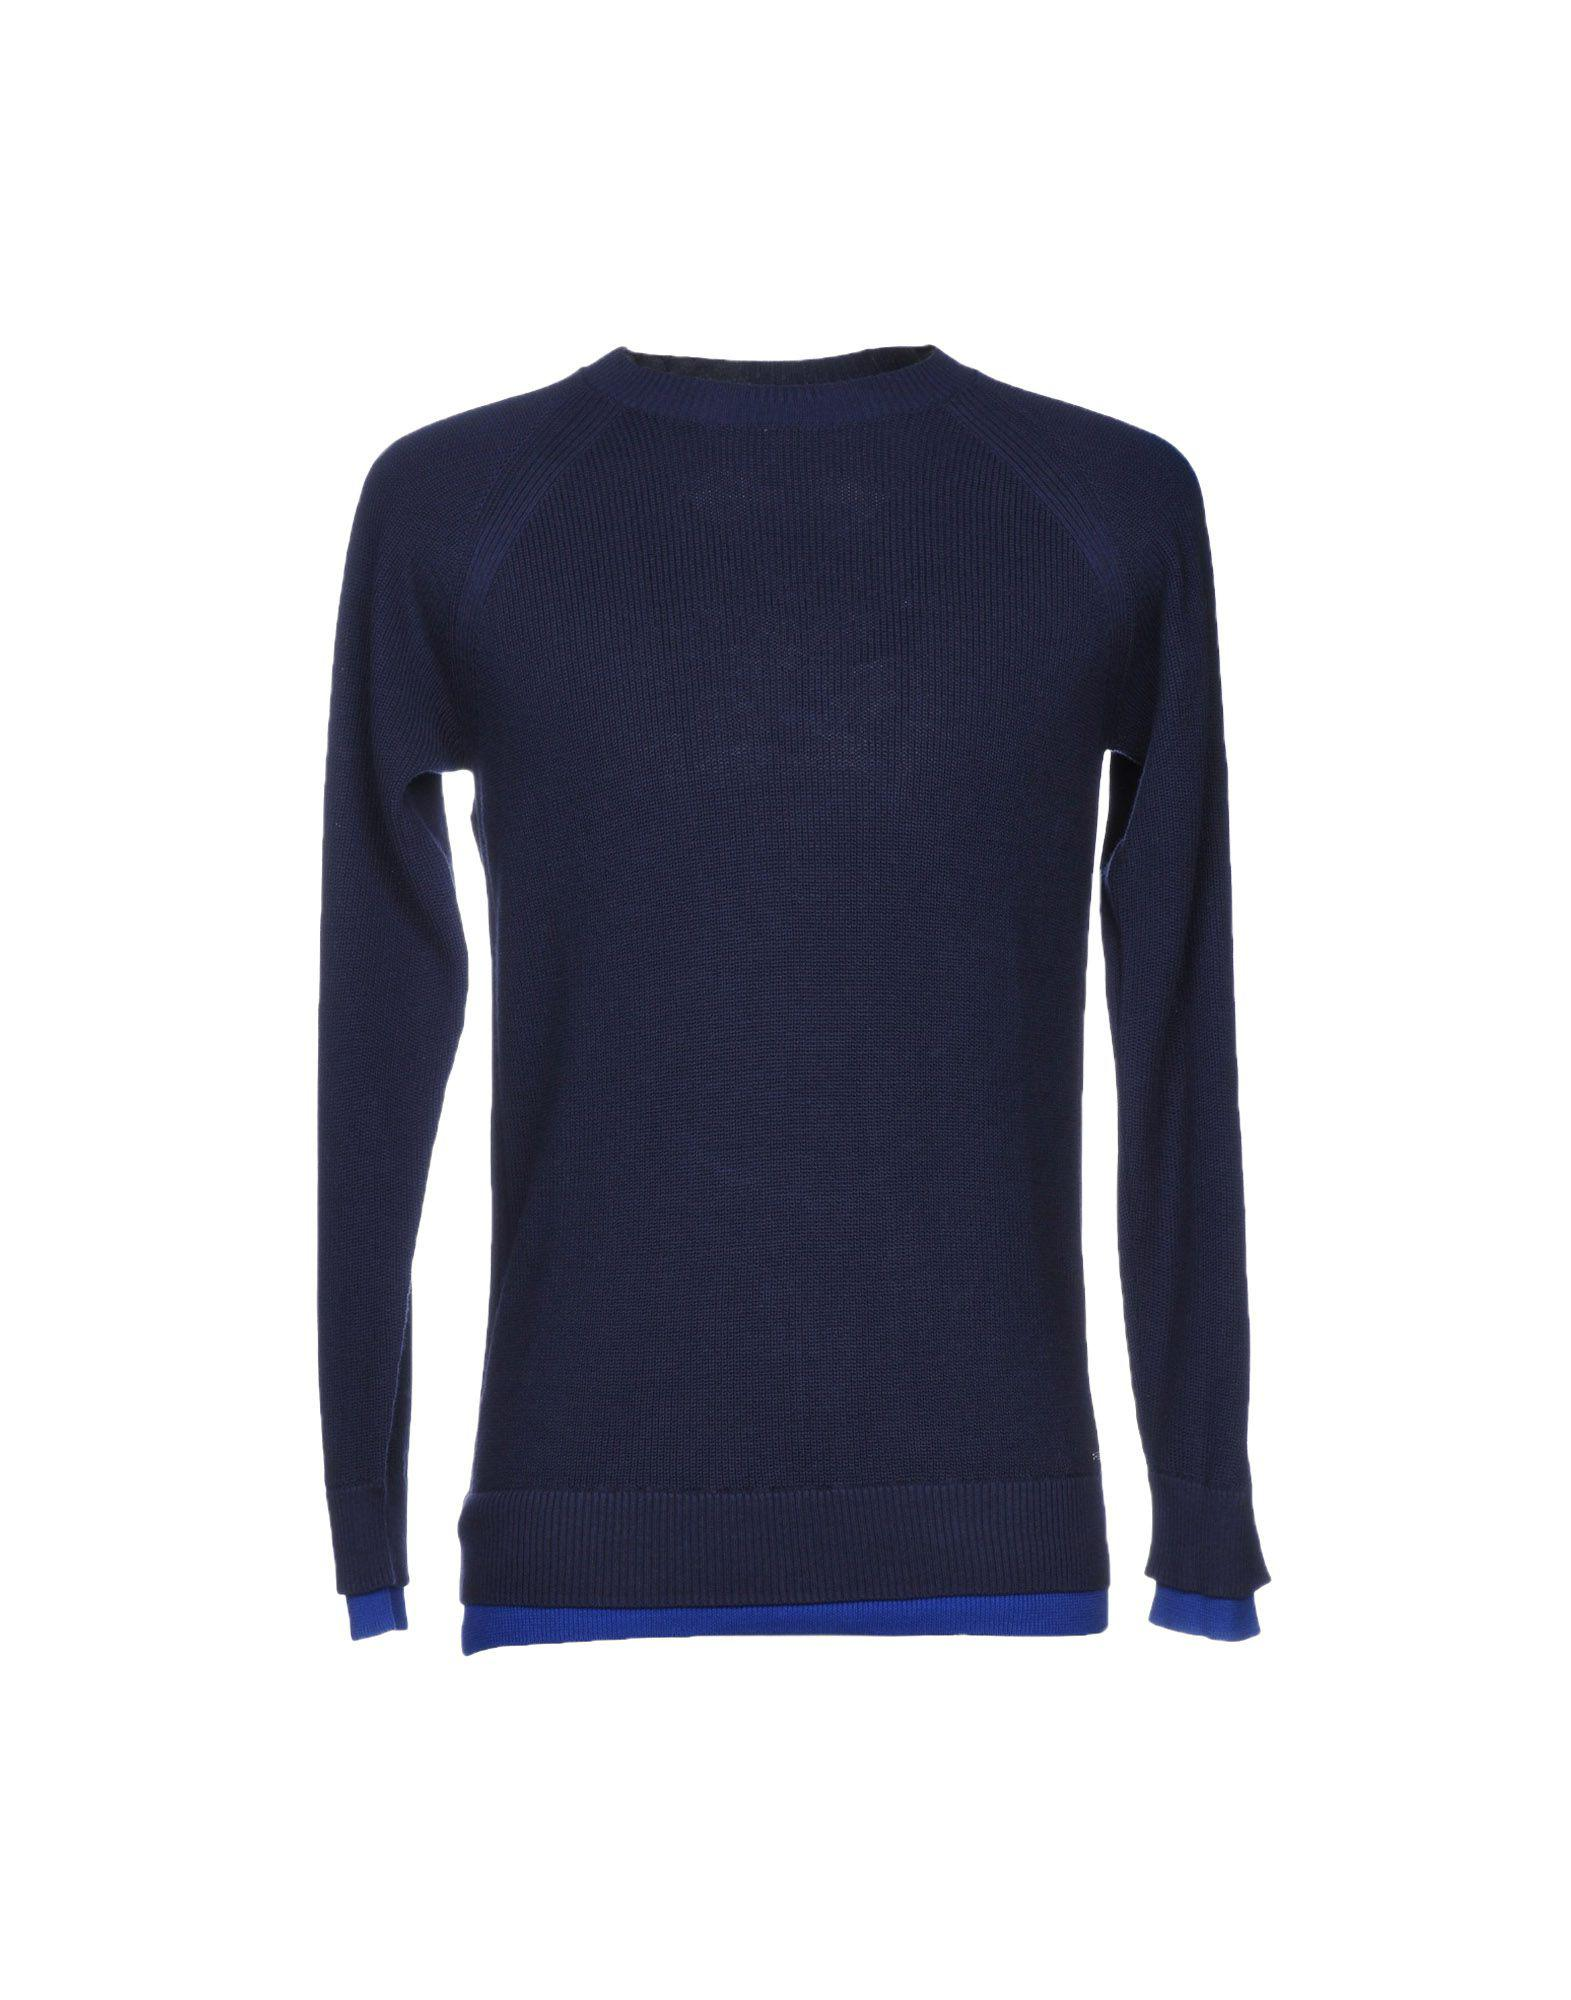 5c8e0c5b5 DIESEL Jumper in Blue for Men - Lyst